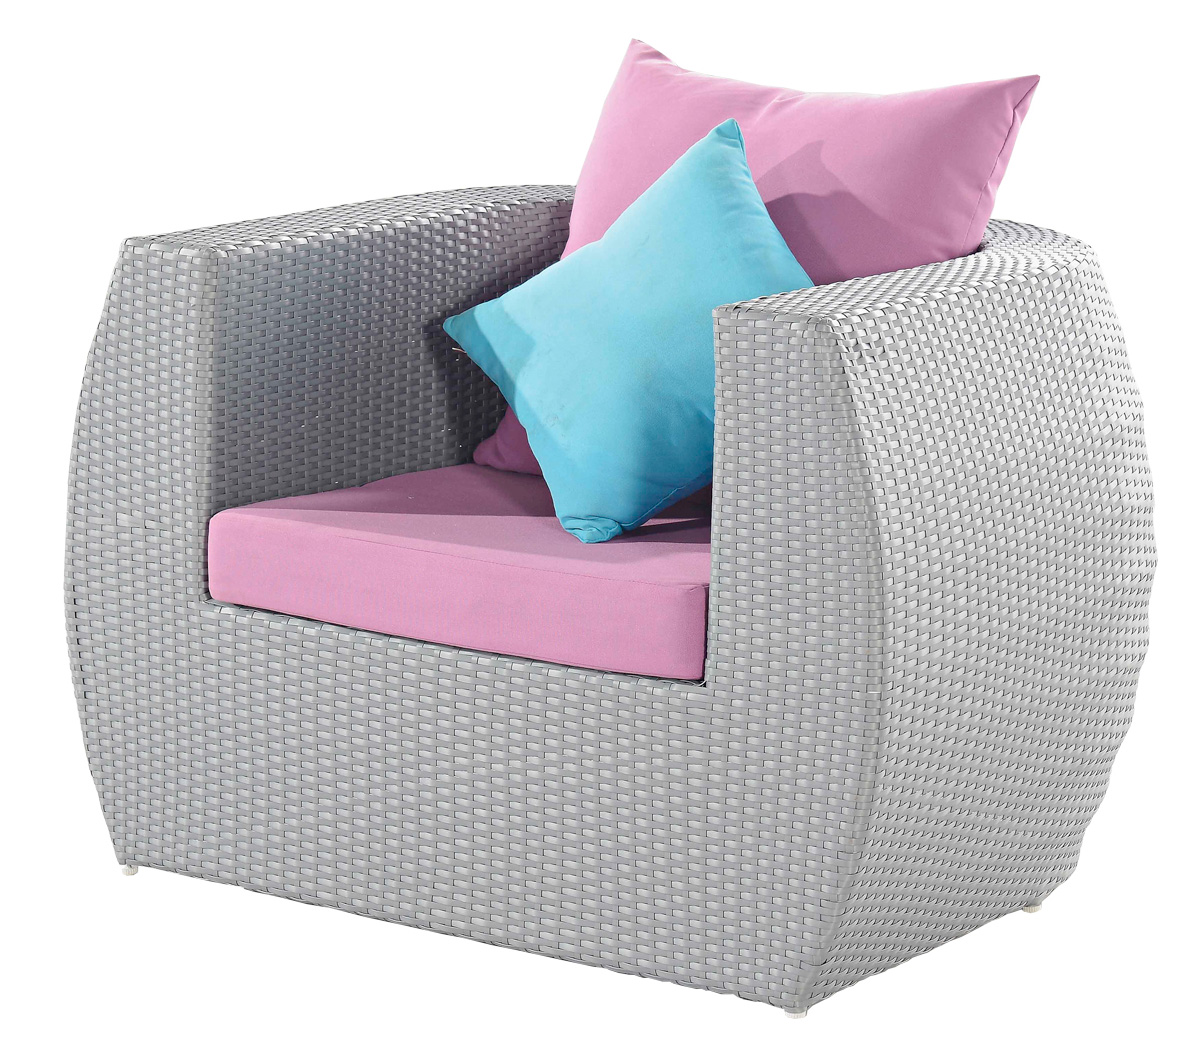 Gray And Lilac Outdoor Furniture Set Adorable Home